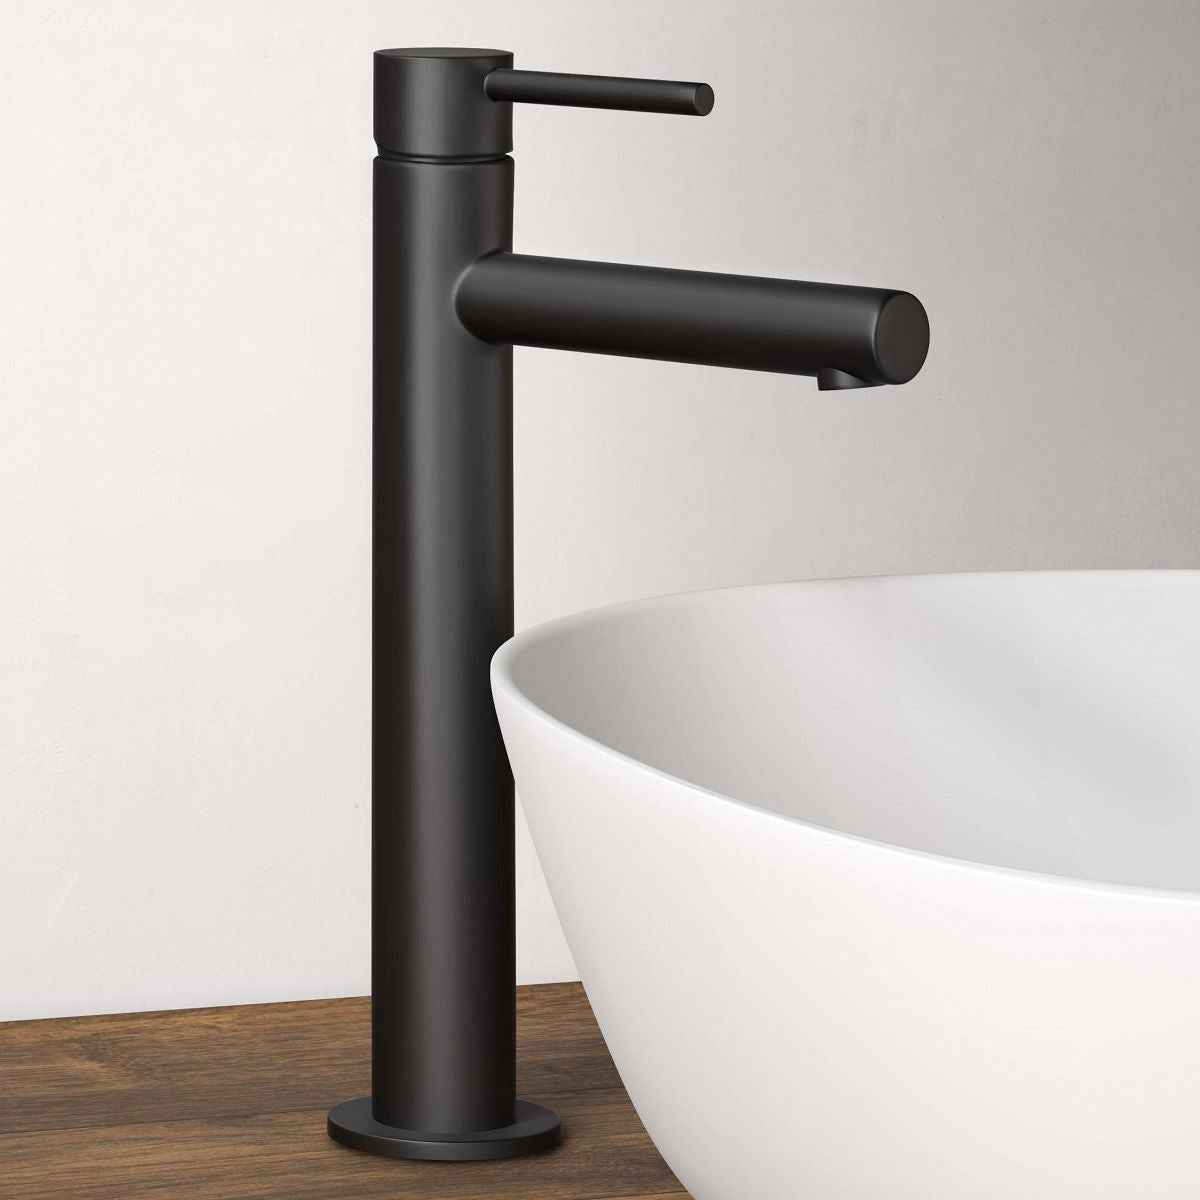 VitrA Origin Matt Black Tall Basin Mixer